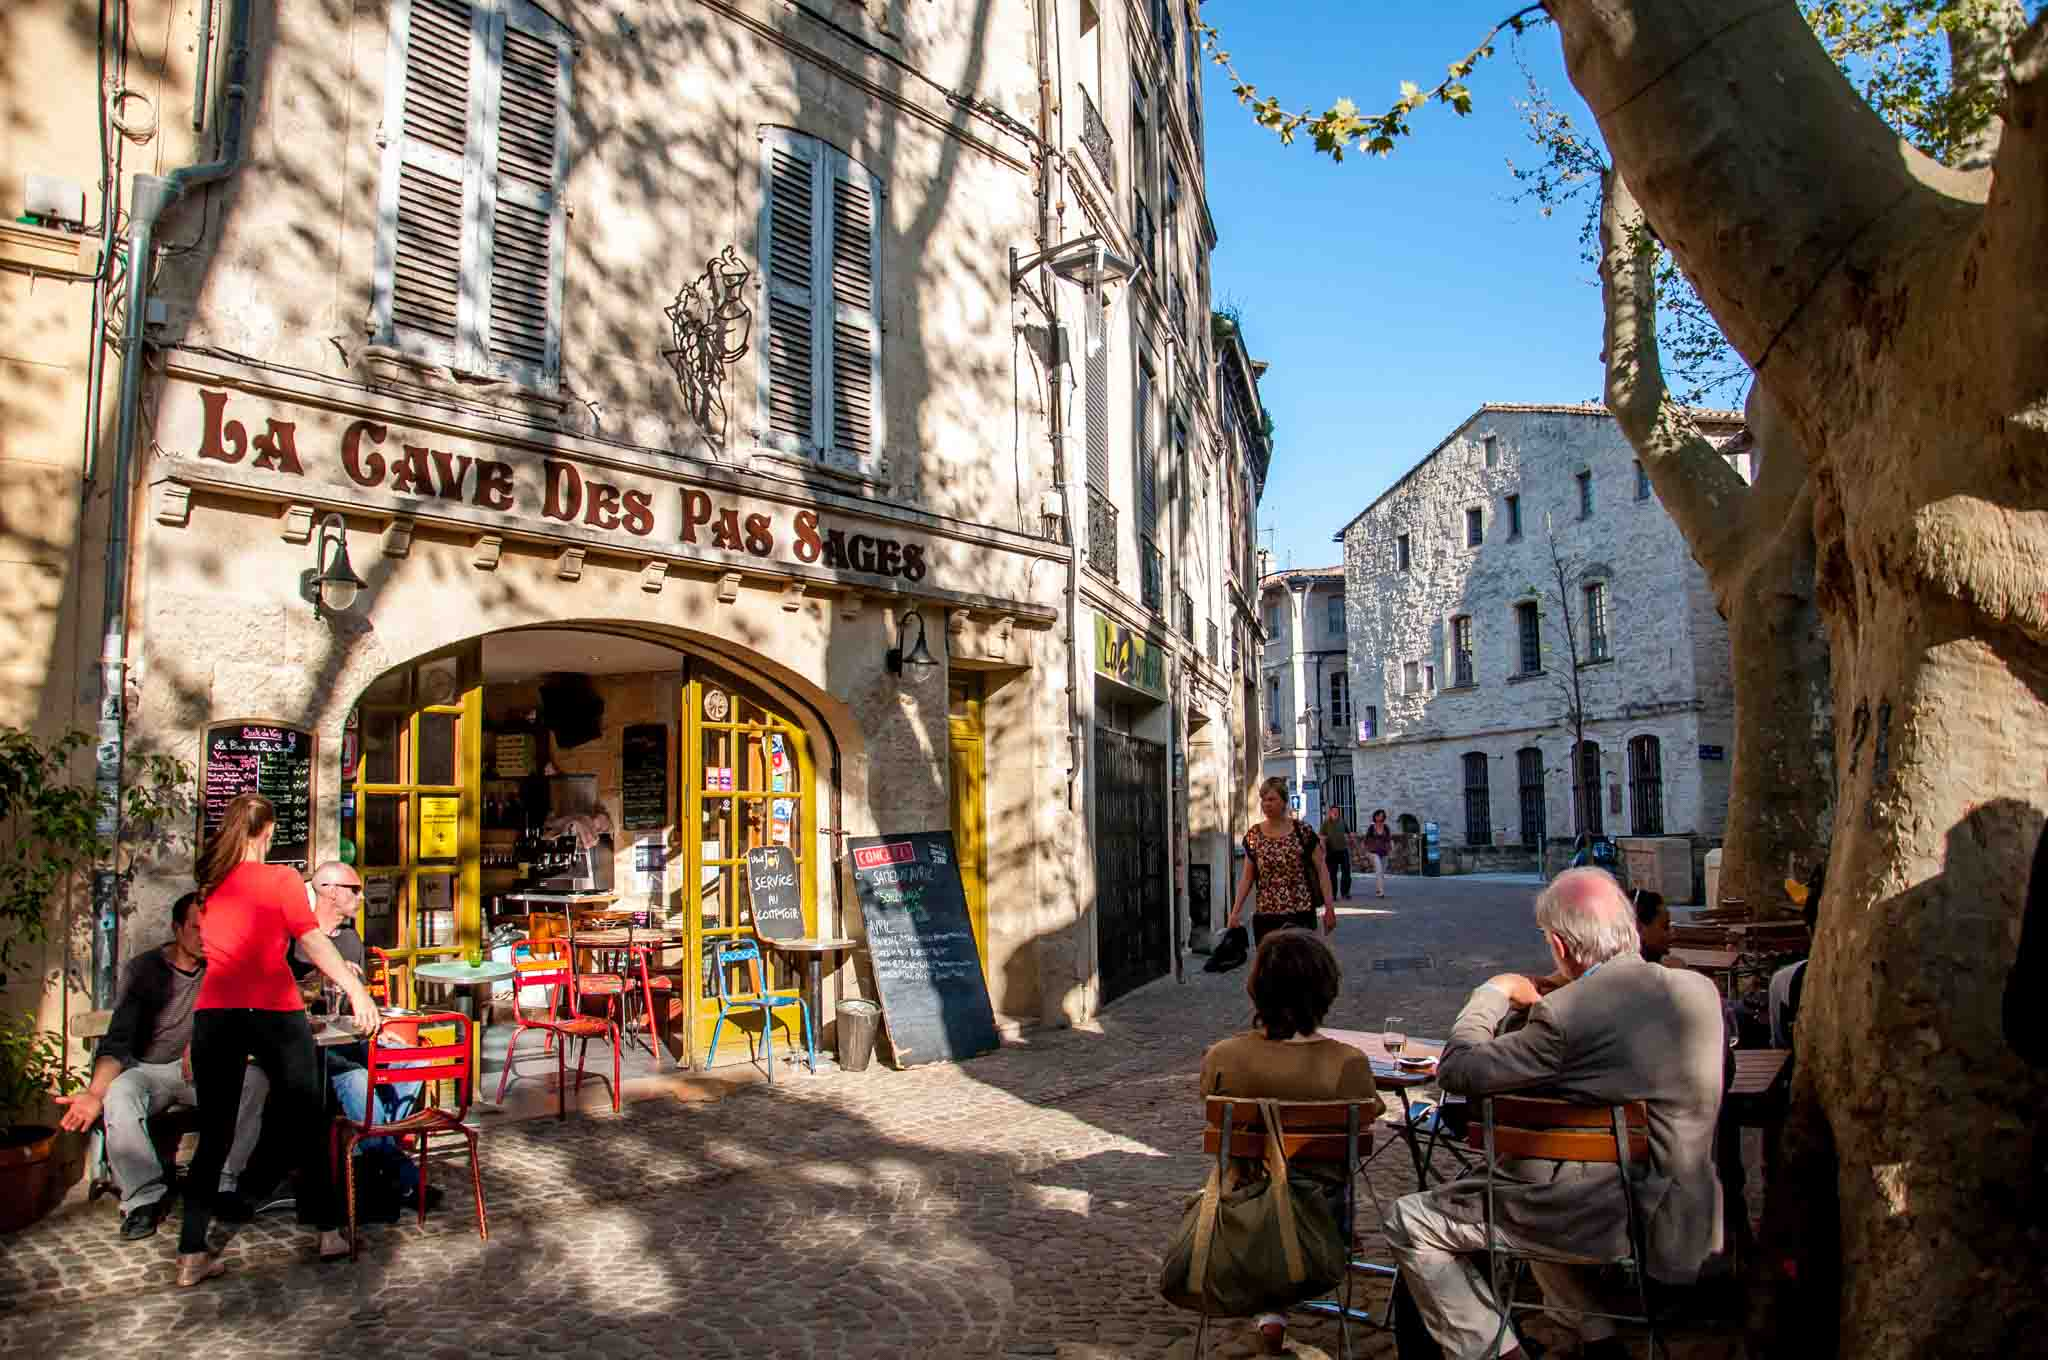 La Cave des Pas Sage on Rue des Teinturiers in Avignon, France. A visit here is one of the best Avignon things to do.